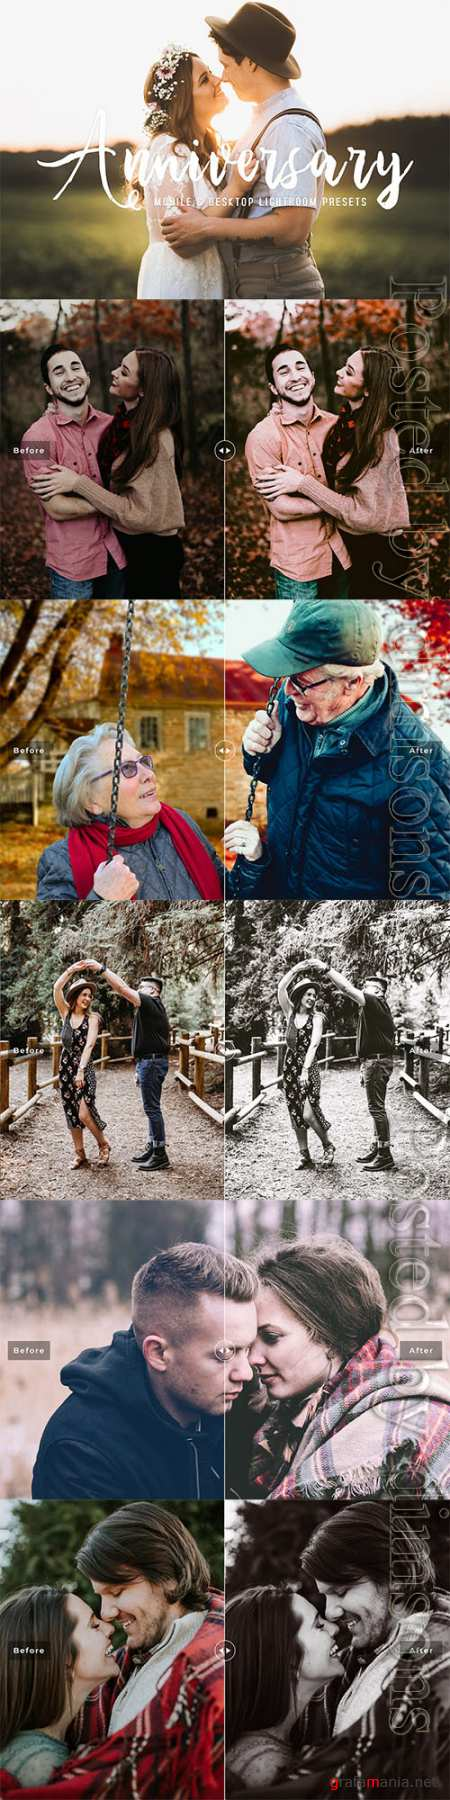 Anniversary Lightroom Presets 3632570